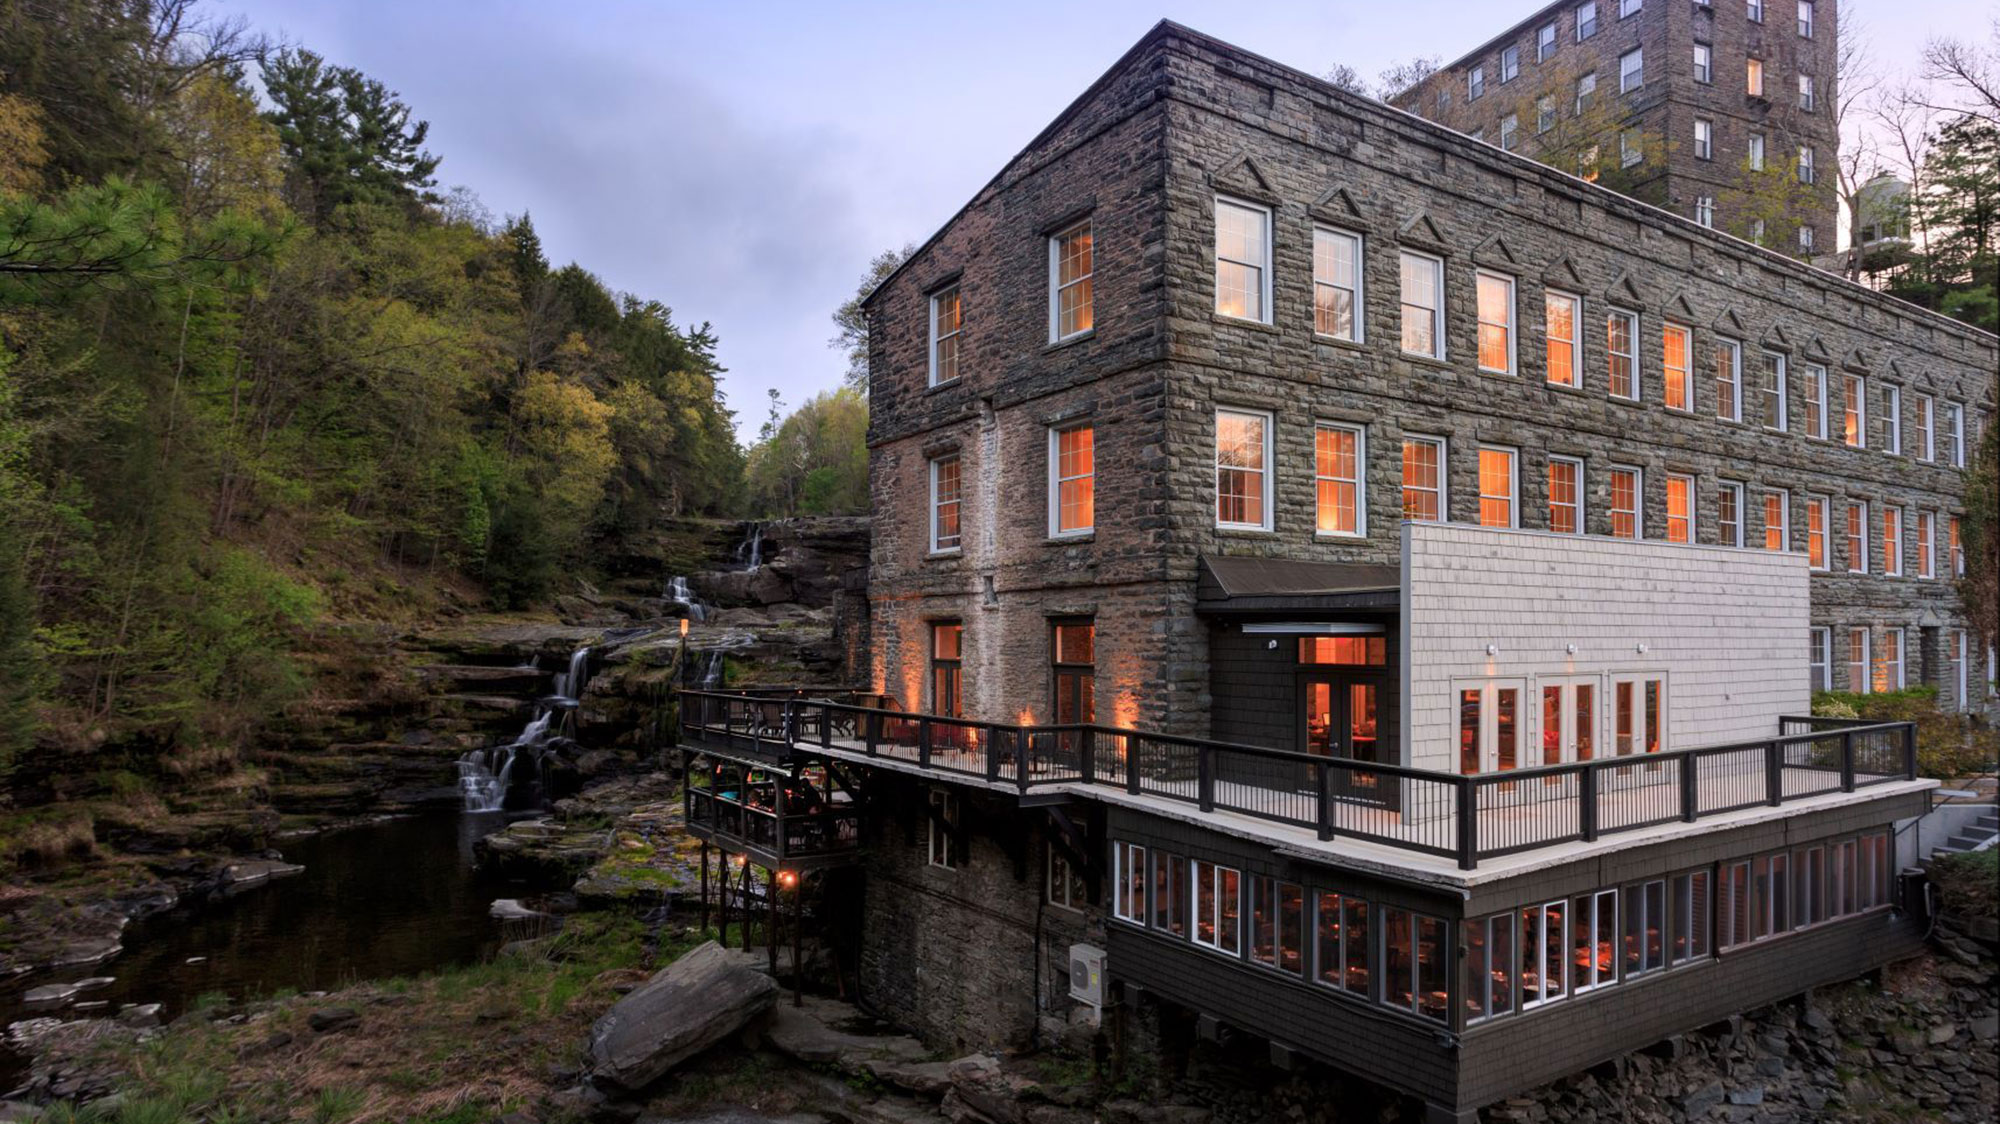 Image of the Ledges Hotel in Hawley, Pennsylvania